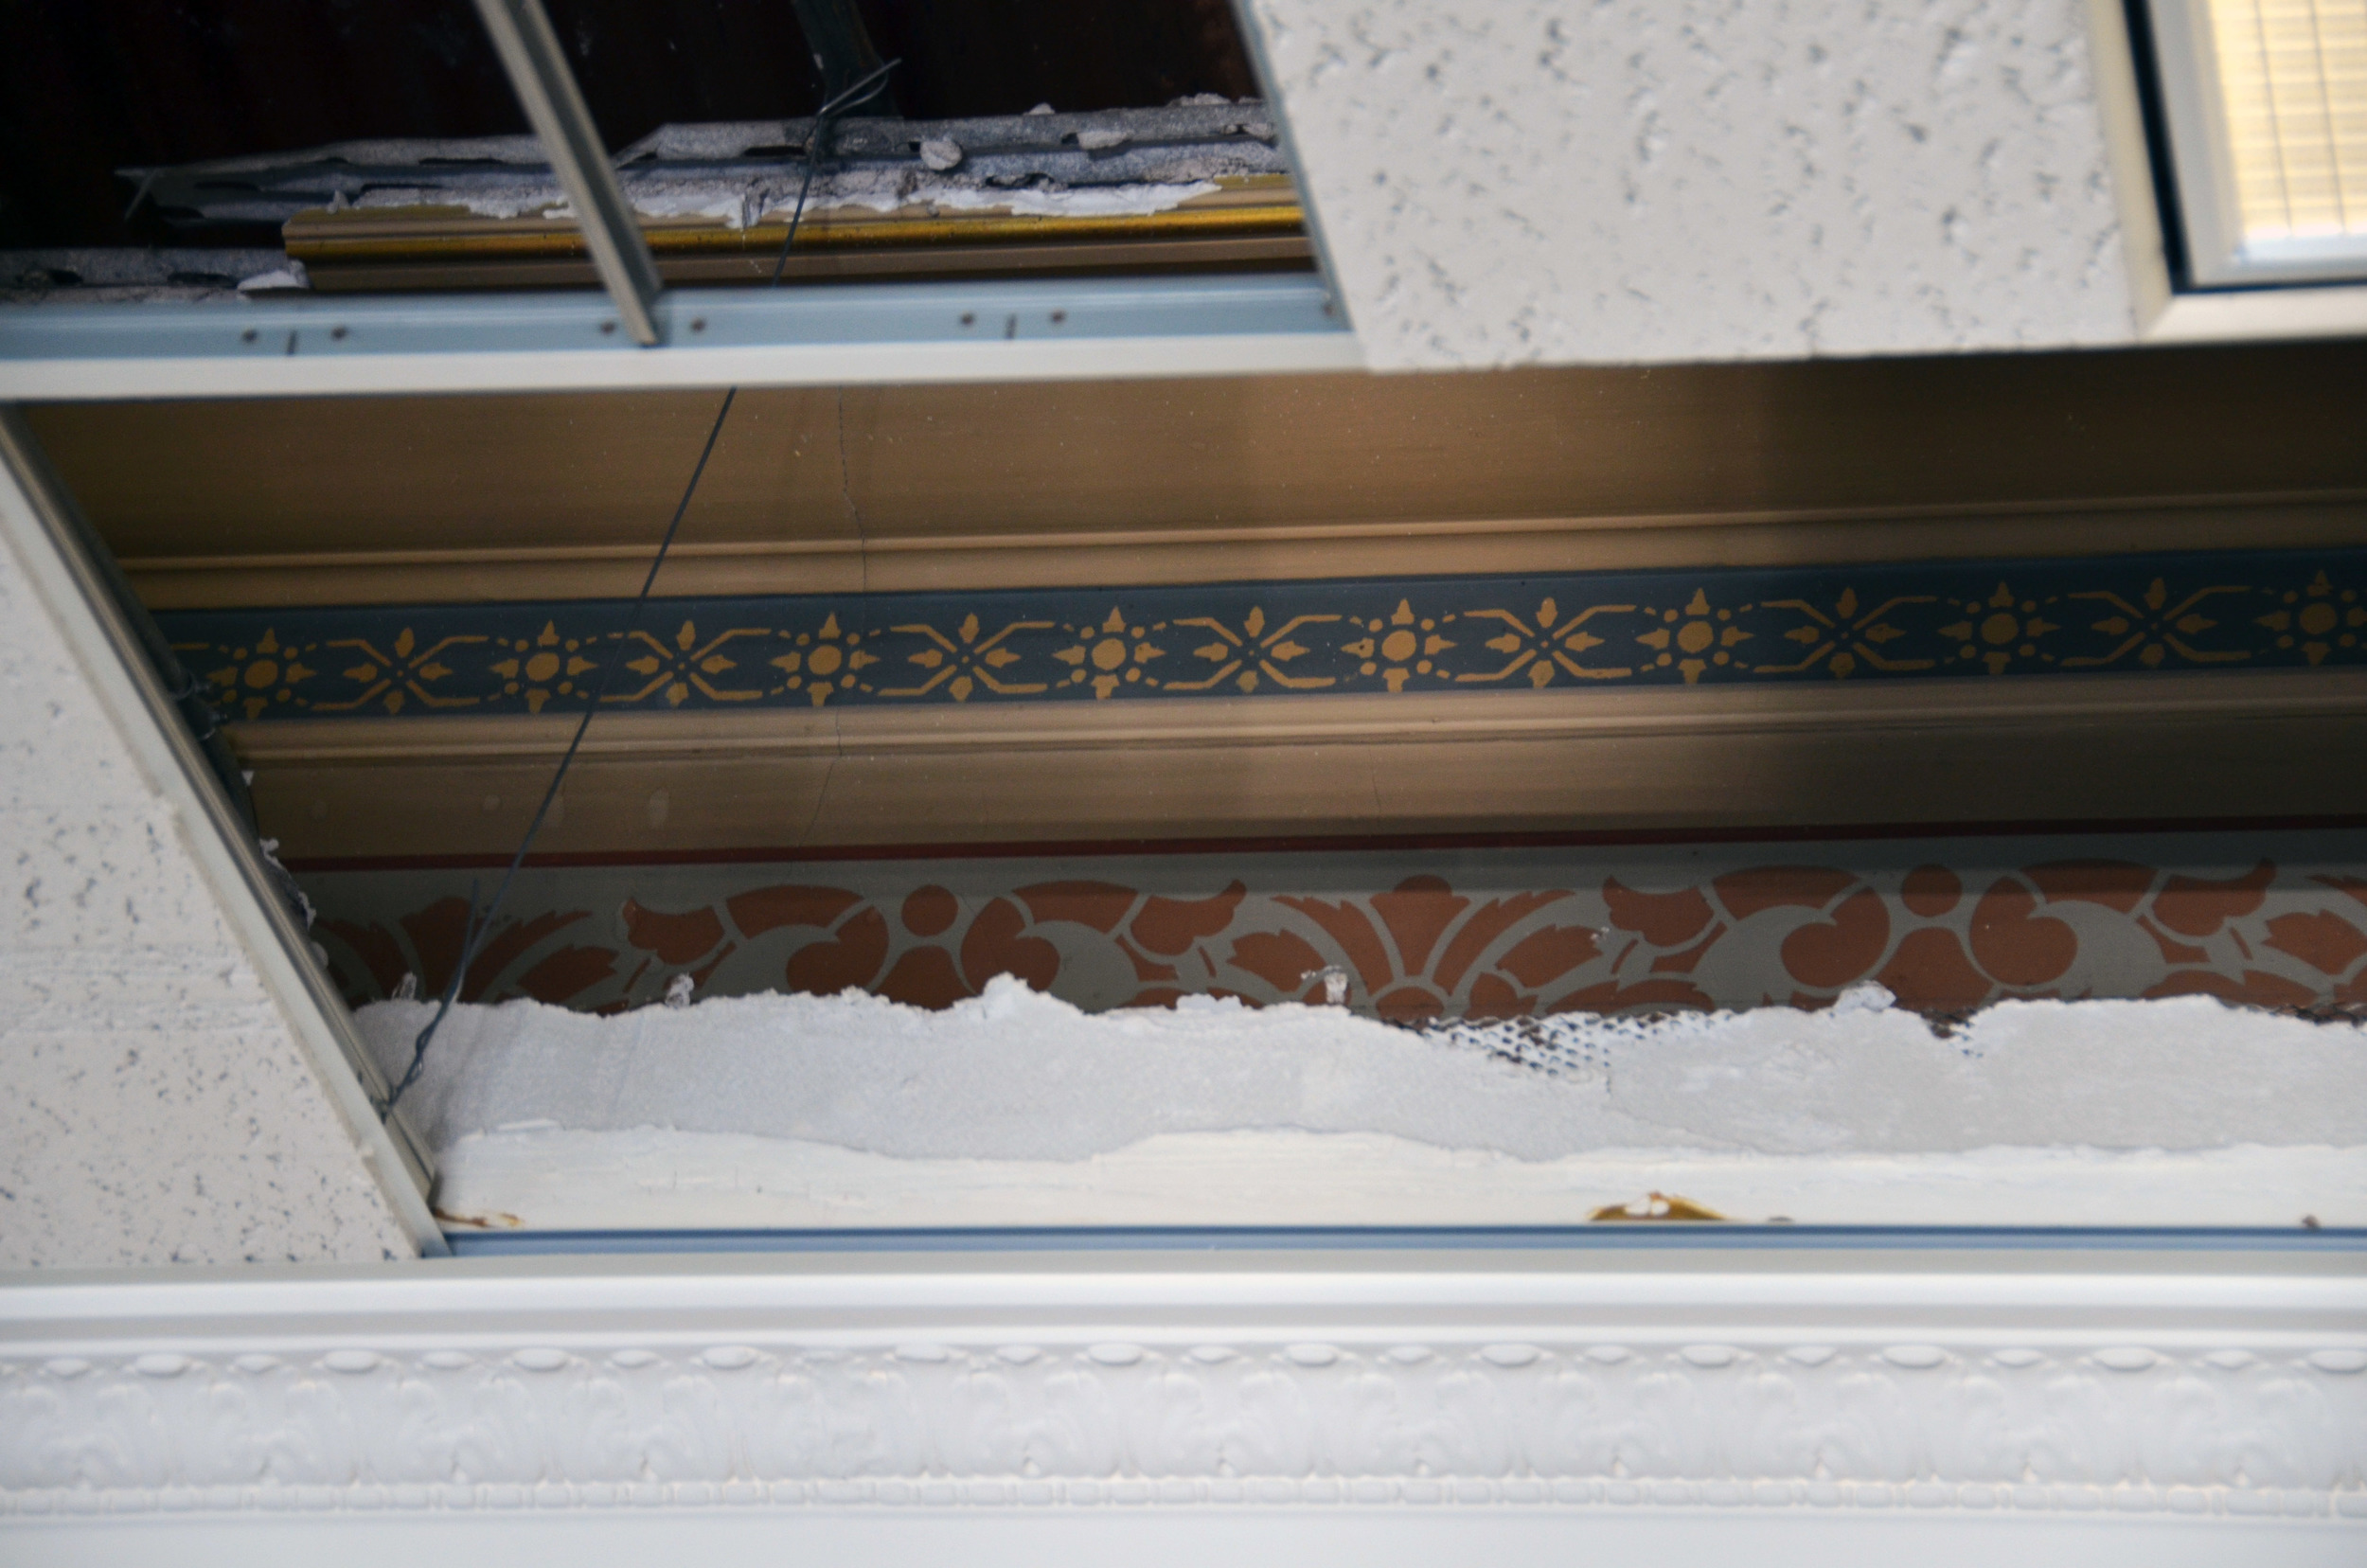 As ceiling tiles are removed in the former Secretary of State's Office, historic paint patterns and crown molding appear.